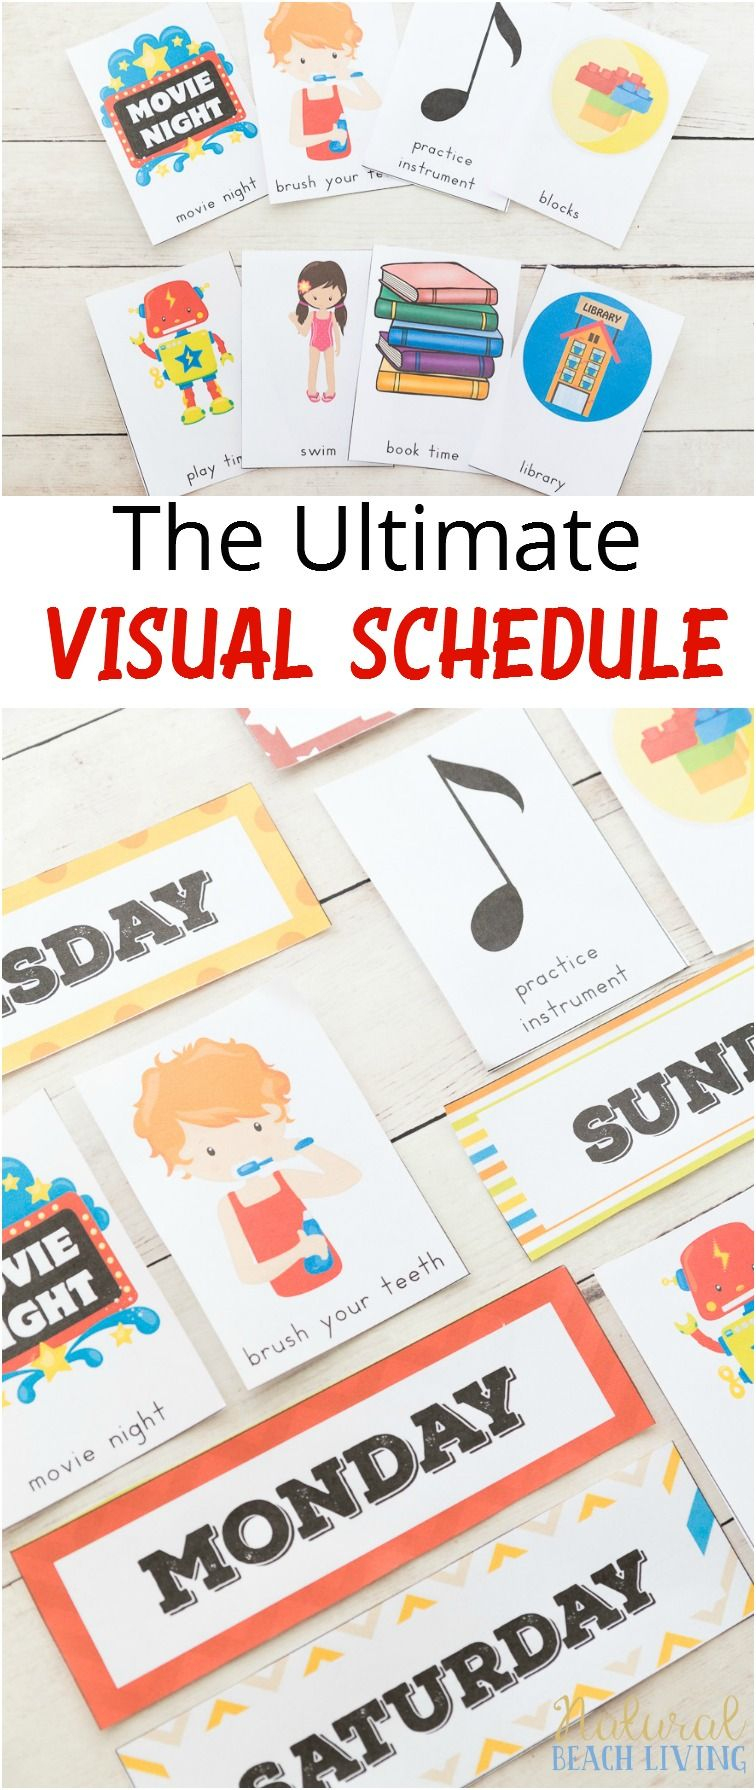 Daily Visual Schedule For Kids Free Printable | Routine Enfant - Free Printable Schedule Cards